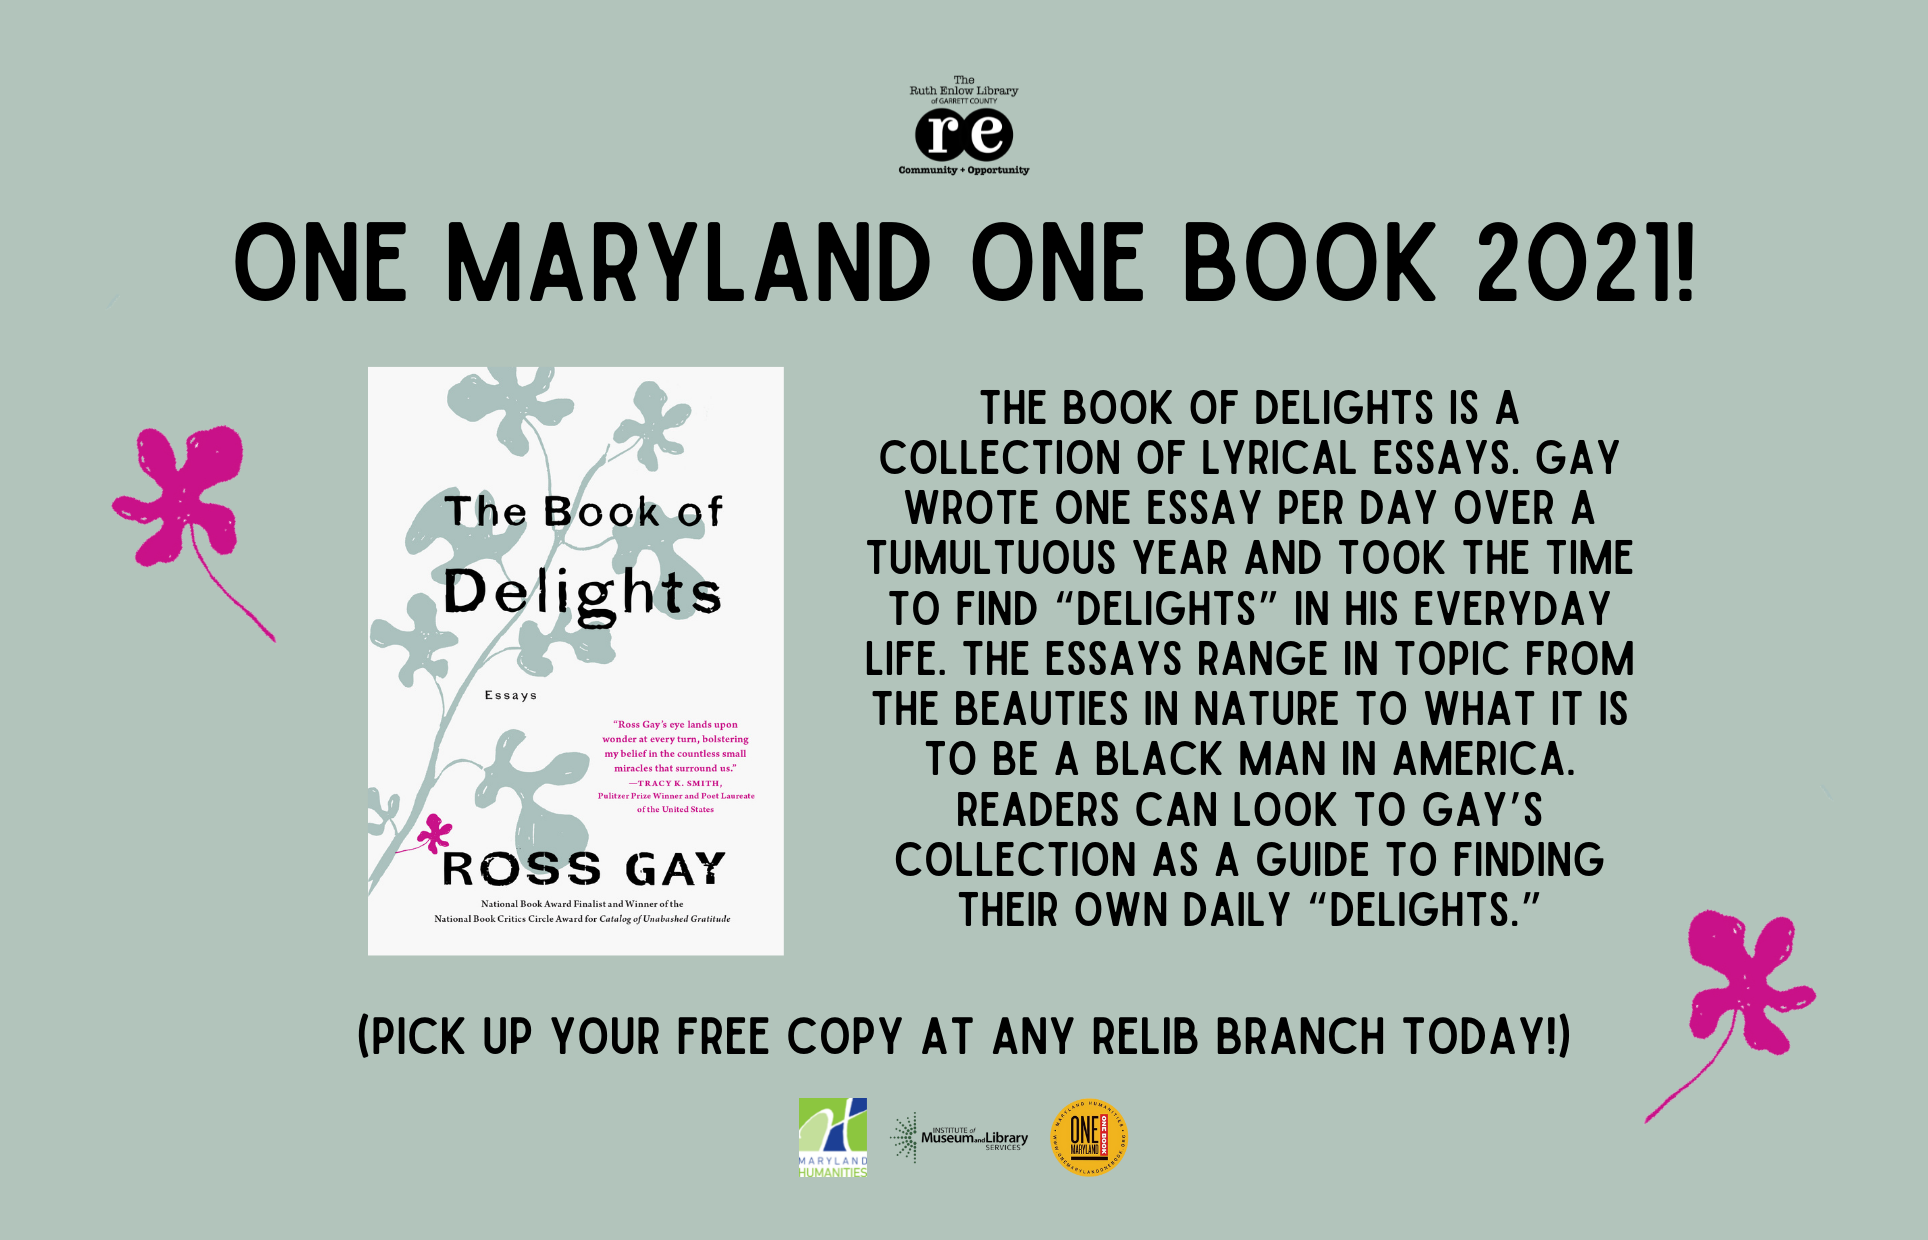 One Maryland One Book 2021 The Book of Delights